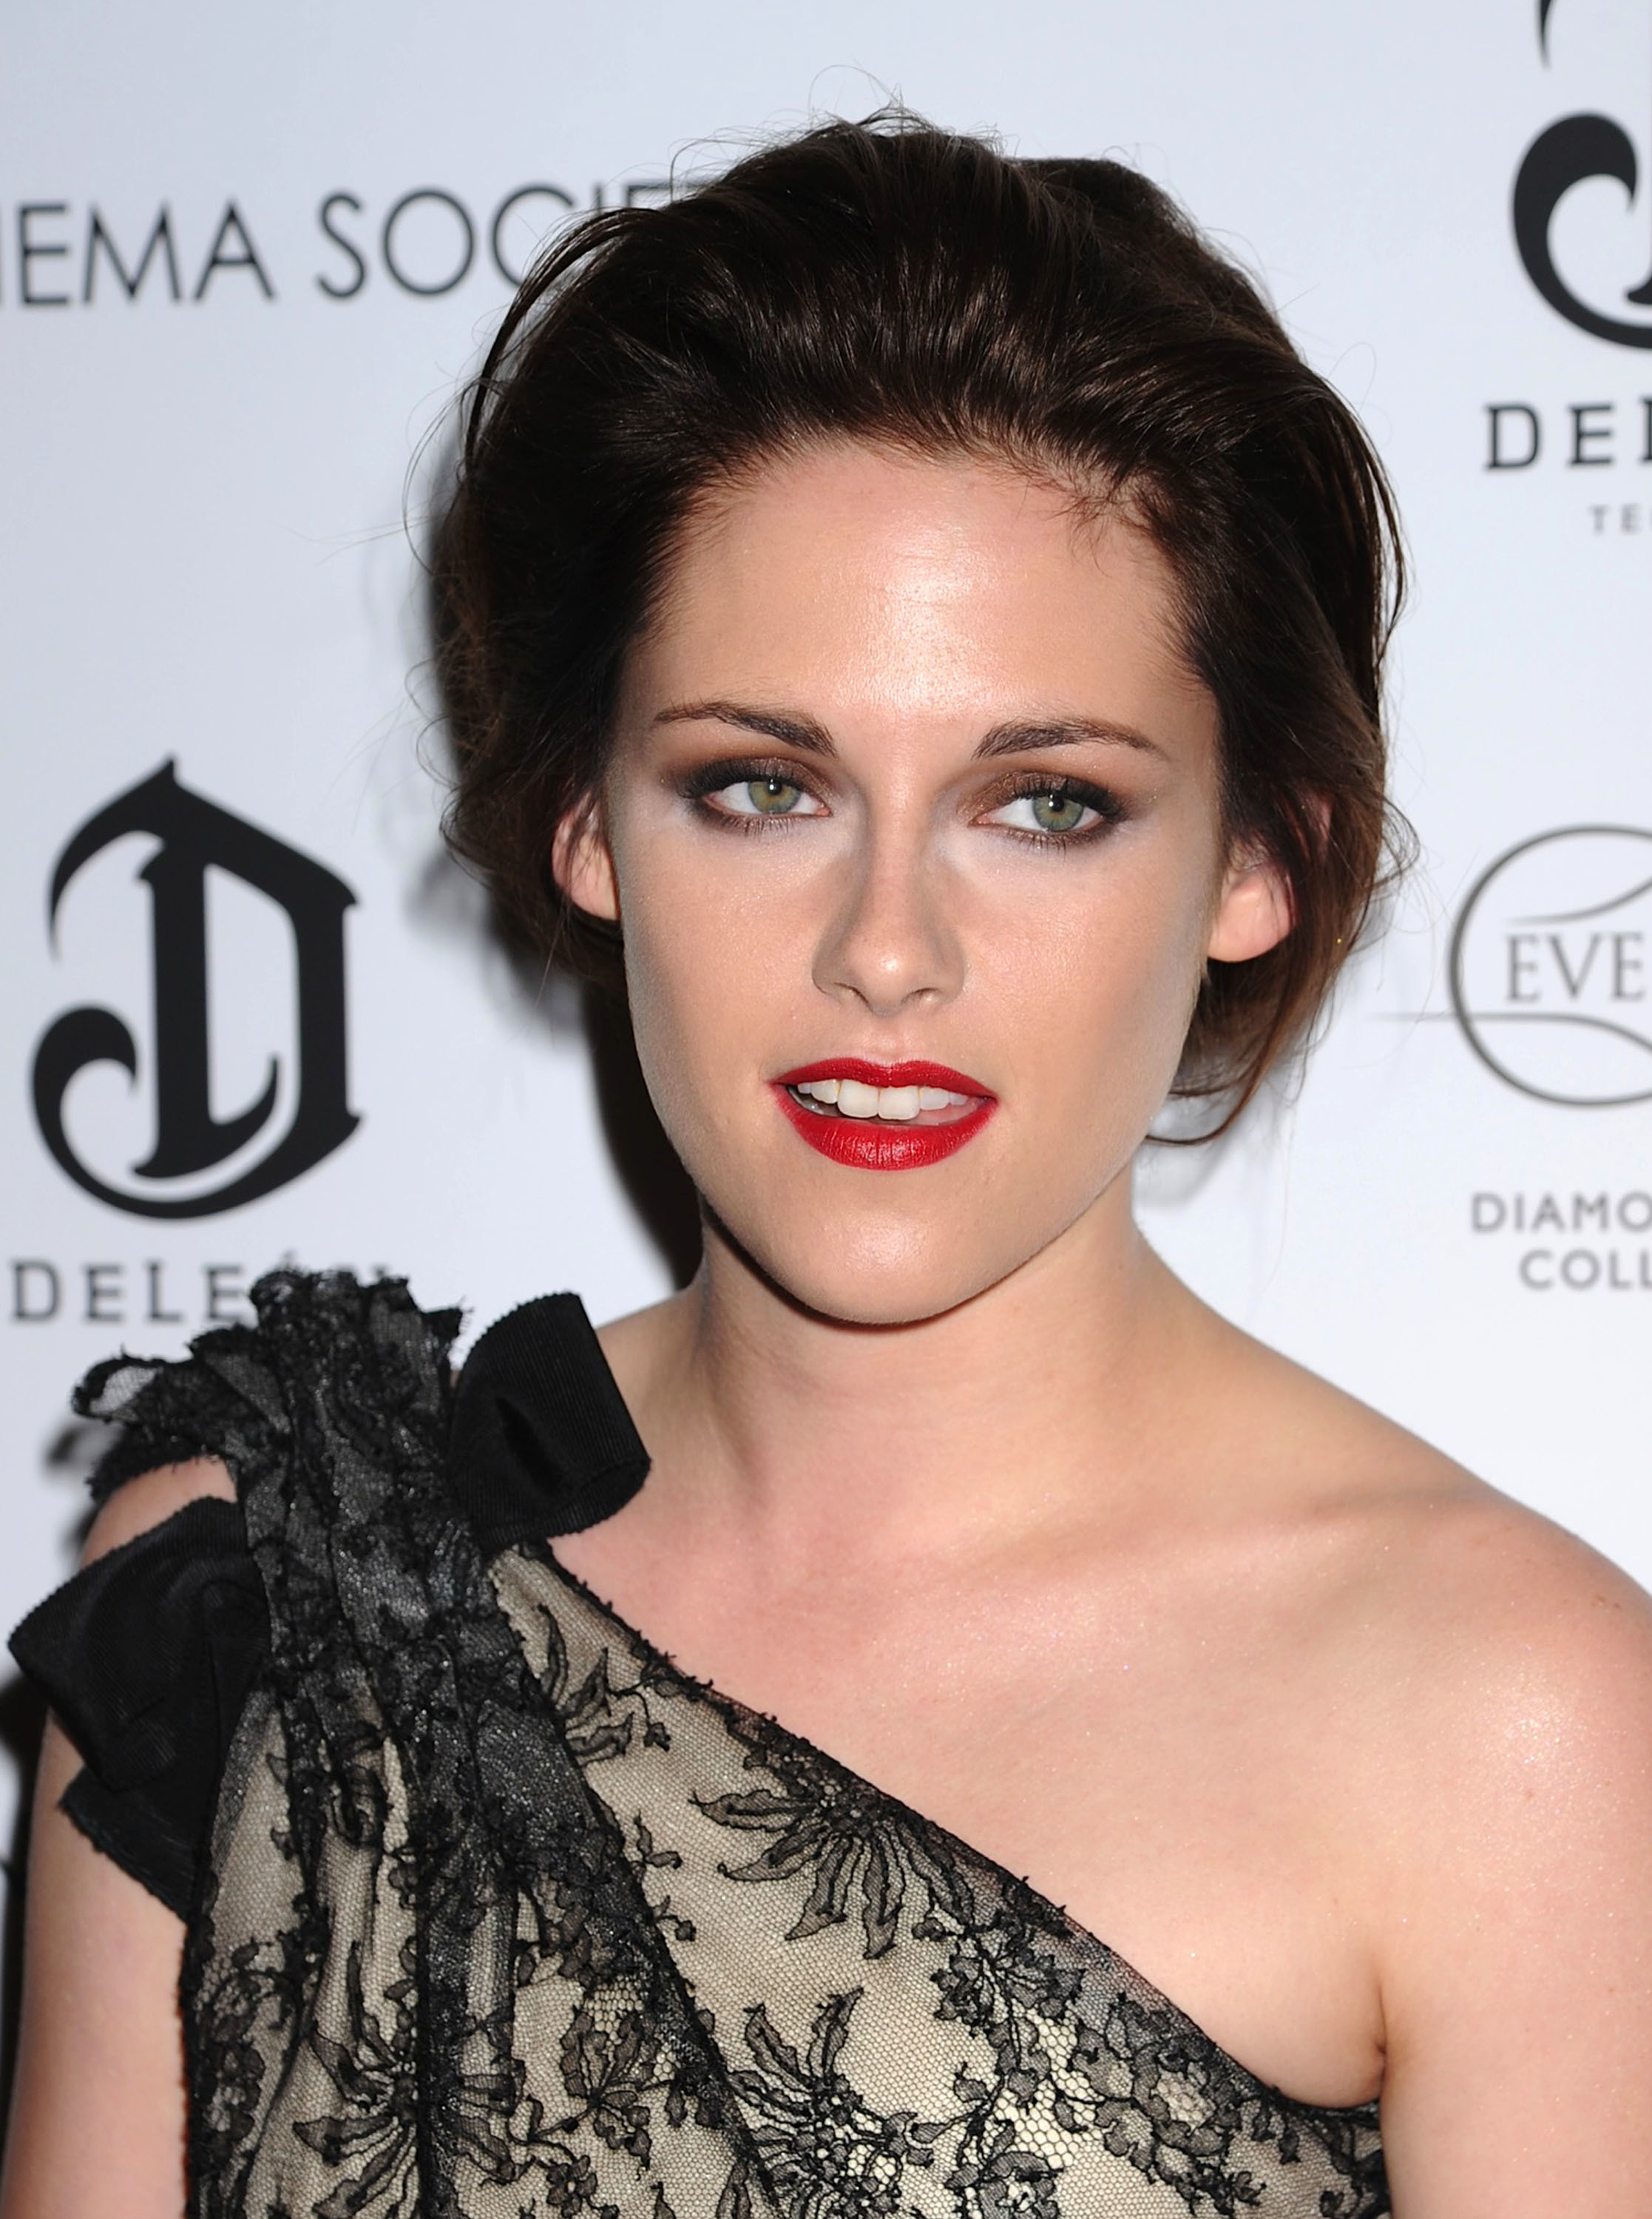 Kristen Stewart Celebrity HD Wallpaper